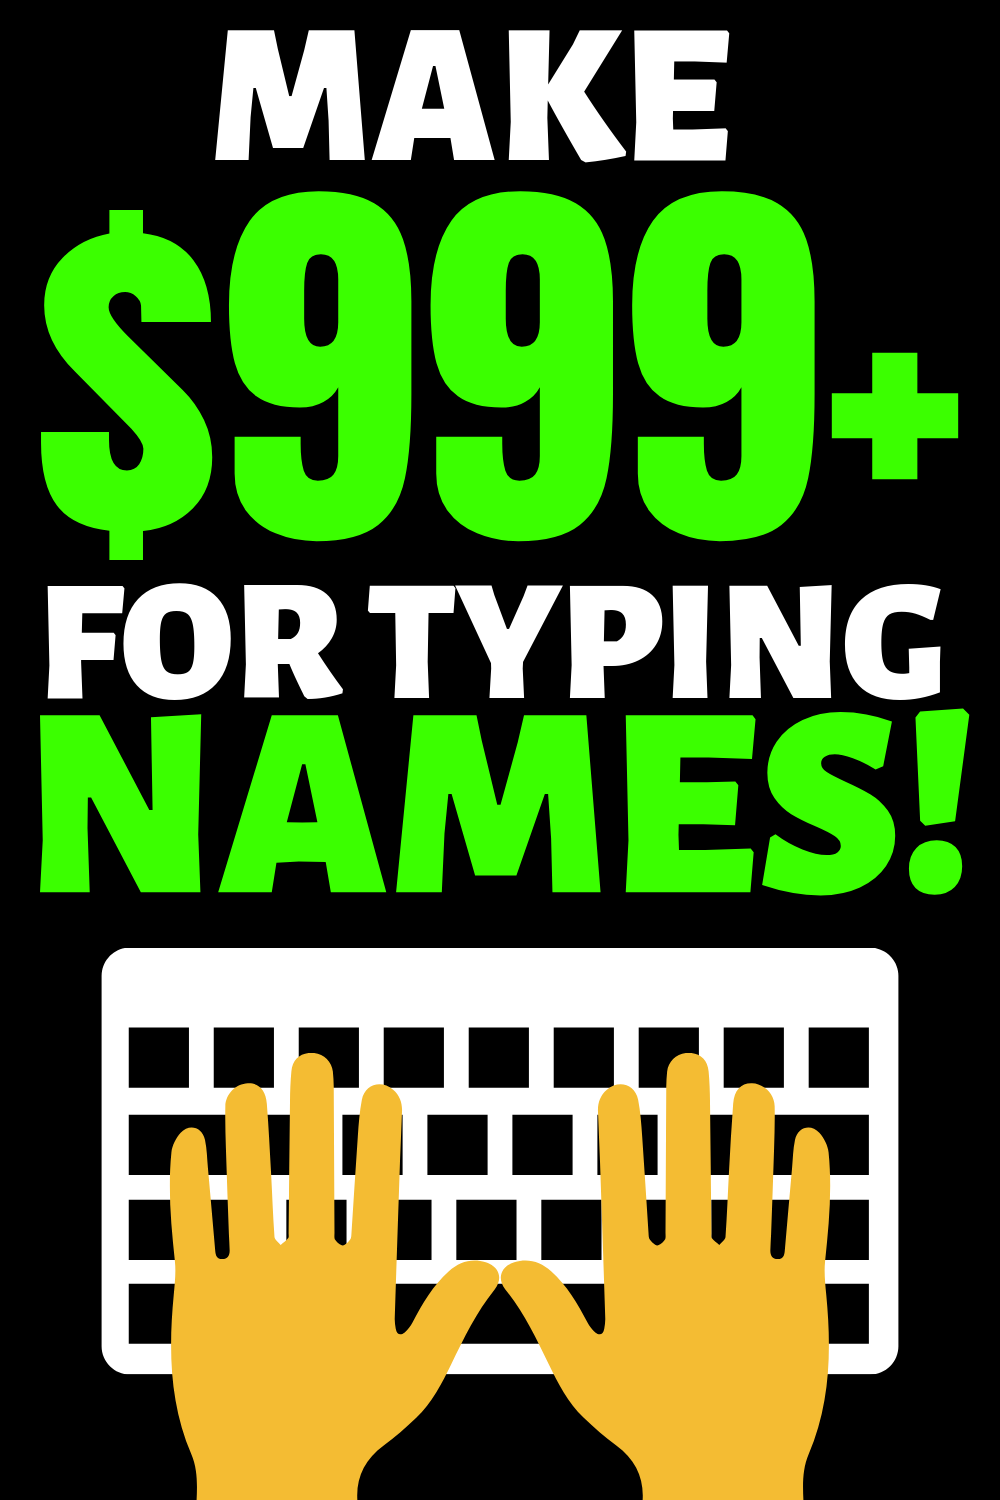 Earn $999 Online For Typing Names! (crazy simple)